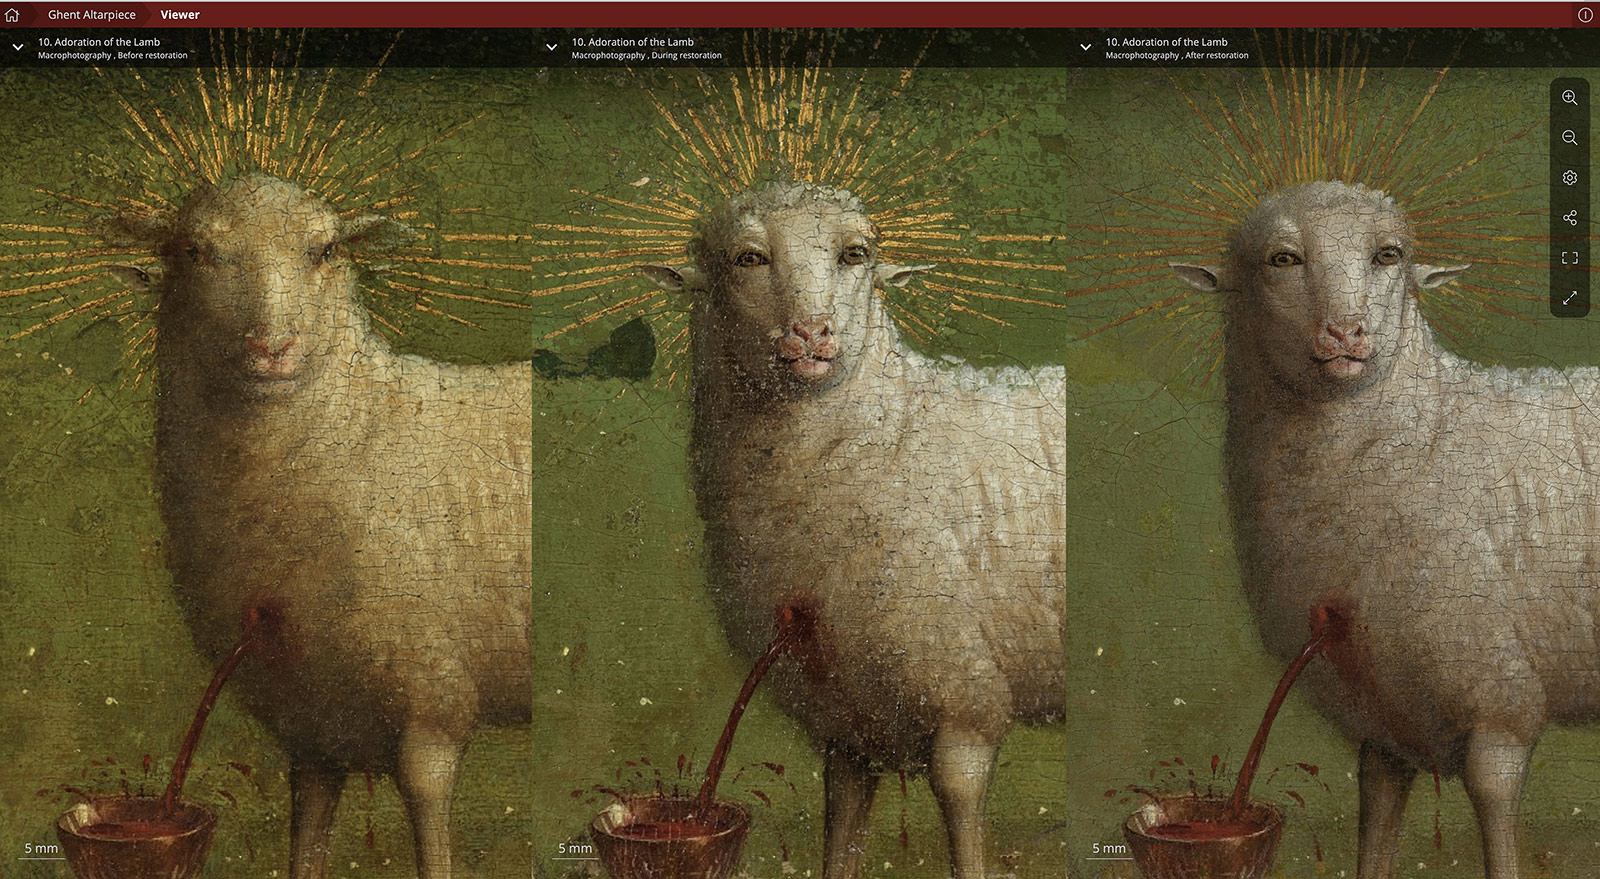 A painting of a sheep with a hole in its chest with blood streaming out into a bucket and gold streaks around its head, depicted three times: the left image is the least restored and looks less detailed, the middle is somewhat restored, and the far right is fully restored with high level of detail